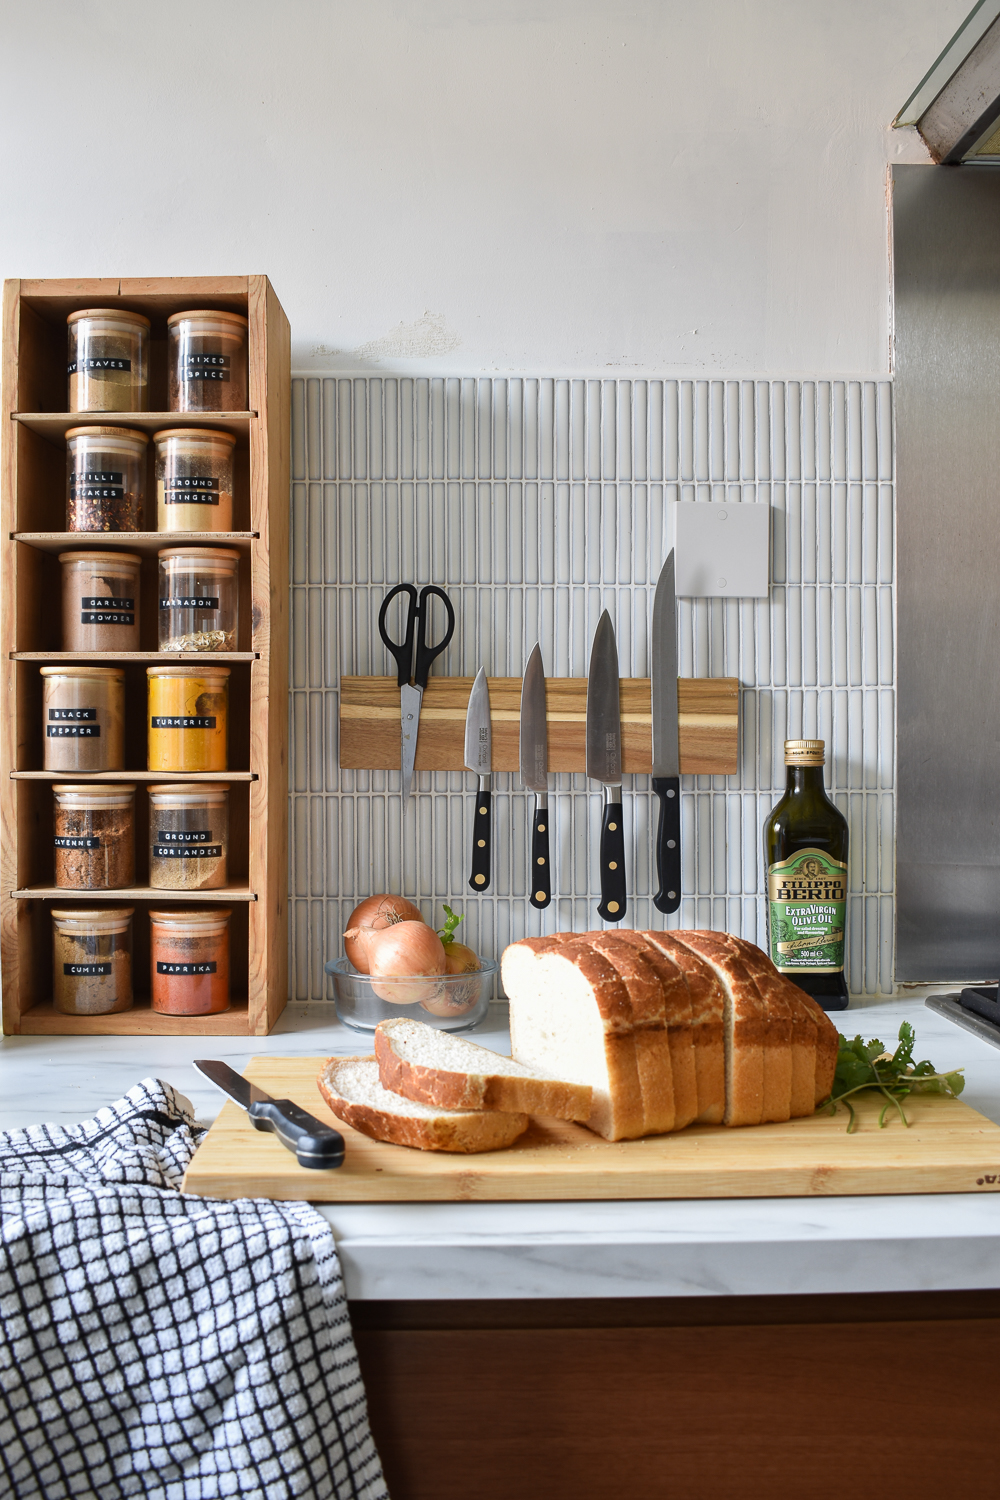 Wooden diy magnetic spice rack attached to kit kat tiles. A loaf of bread on a chopping board in front of the knife rack on countertops,